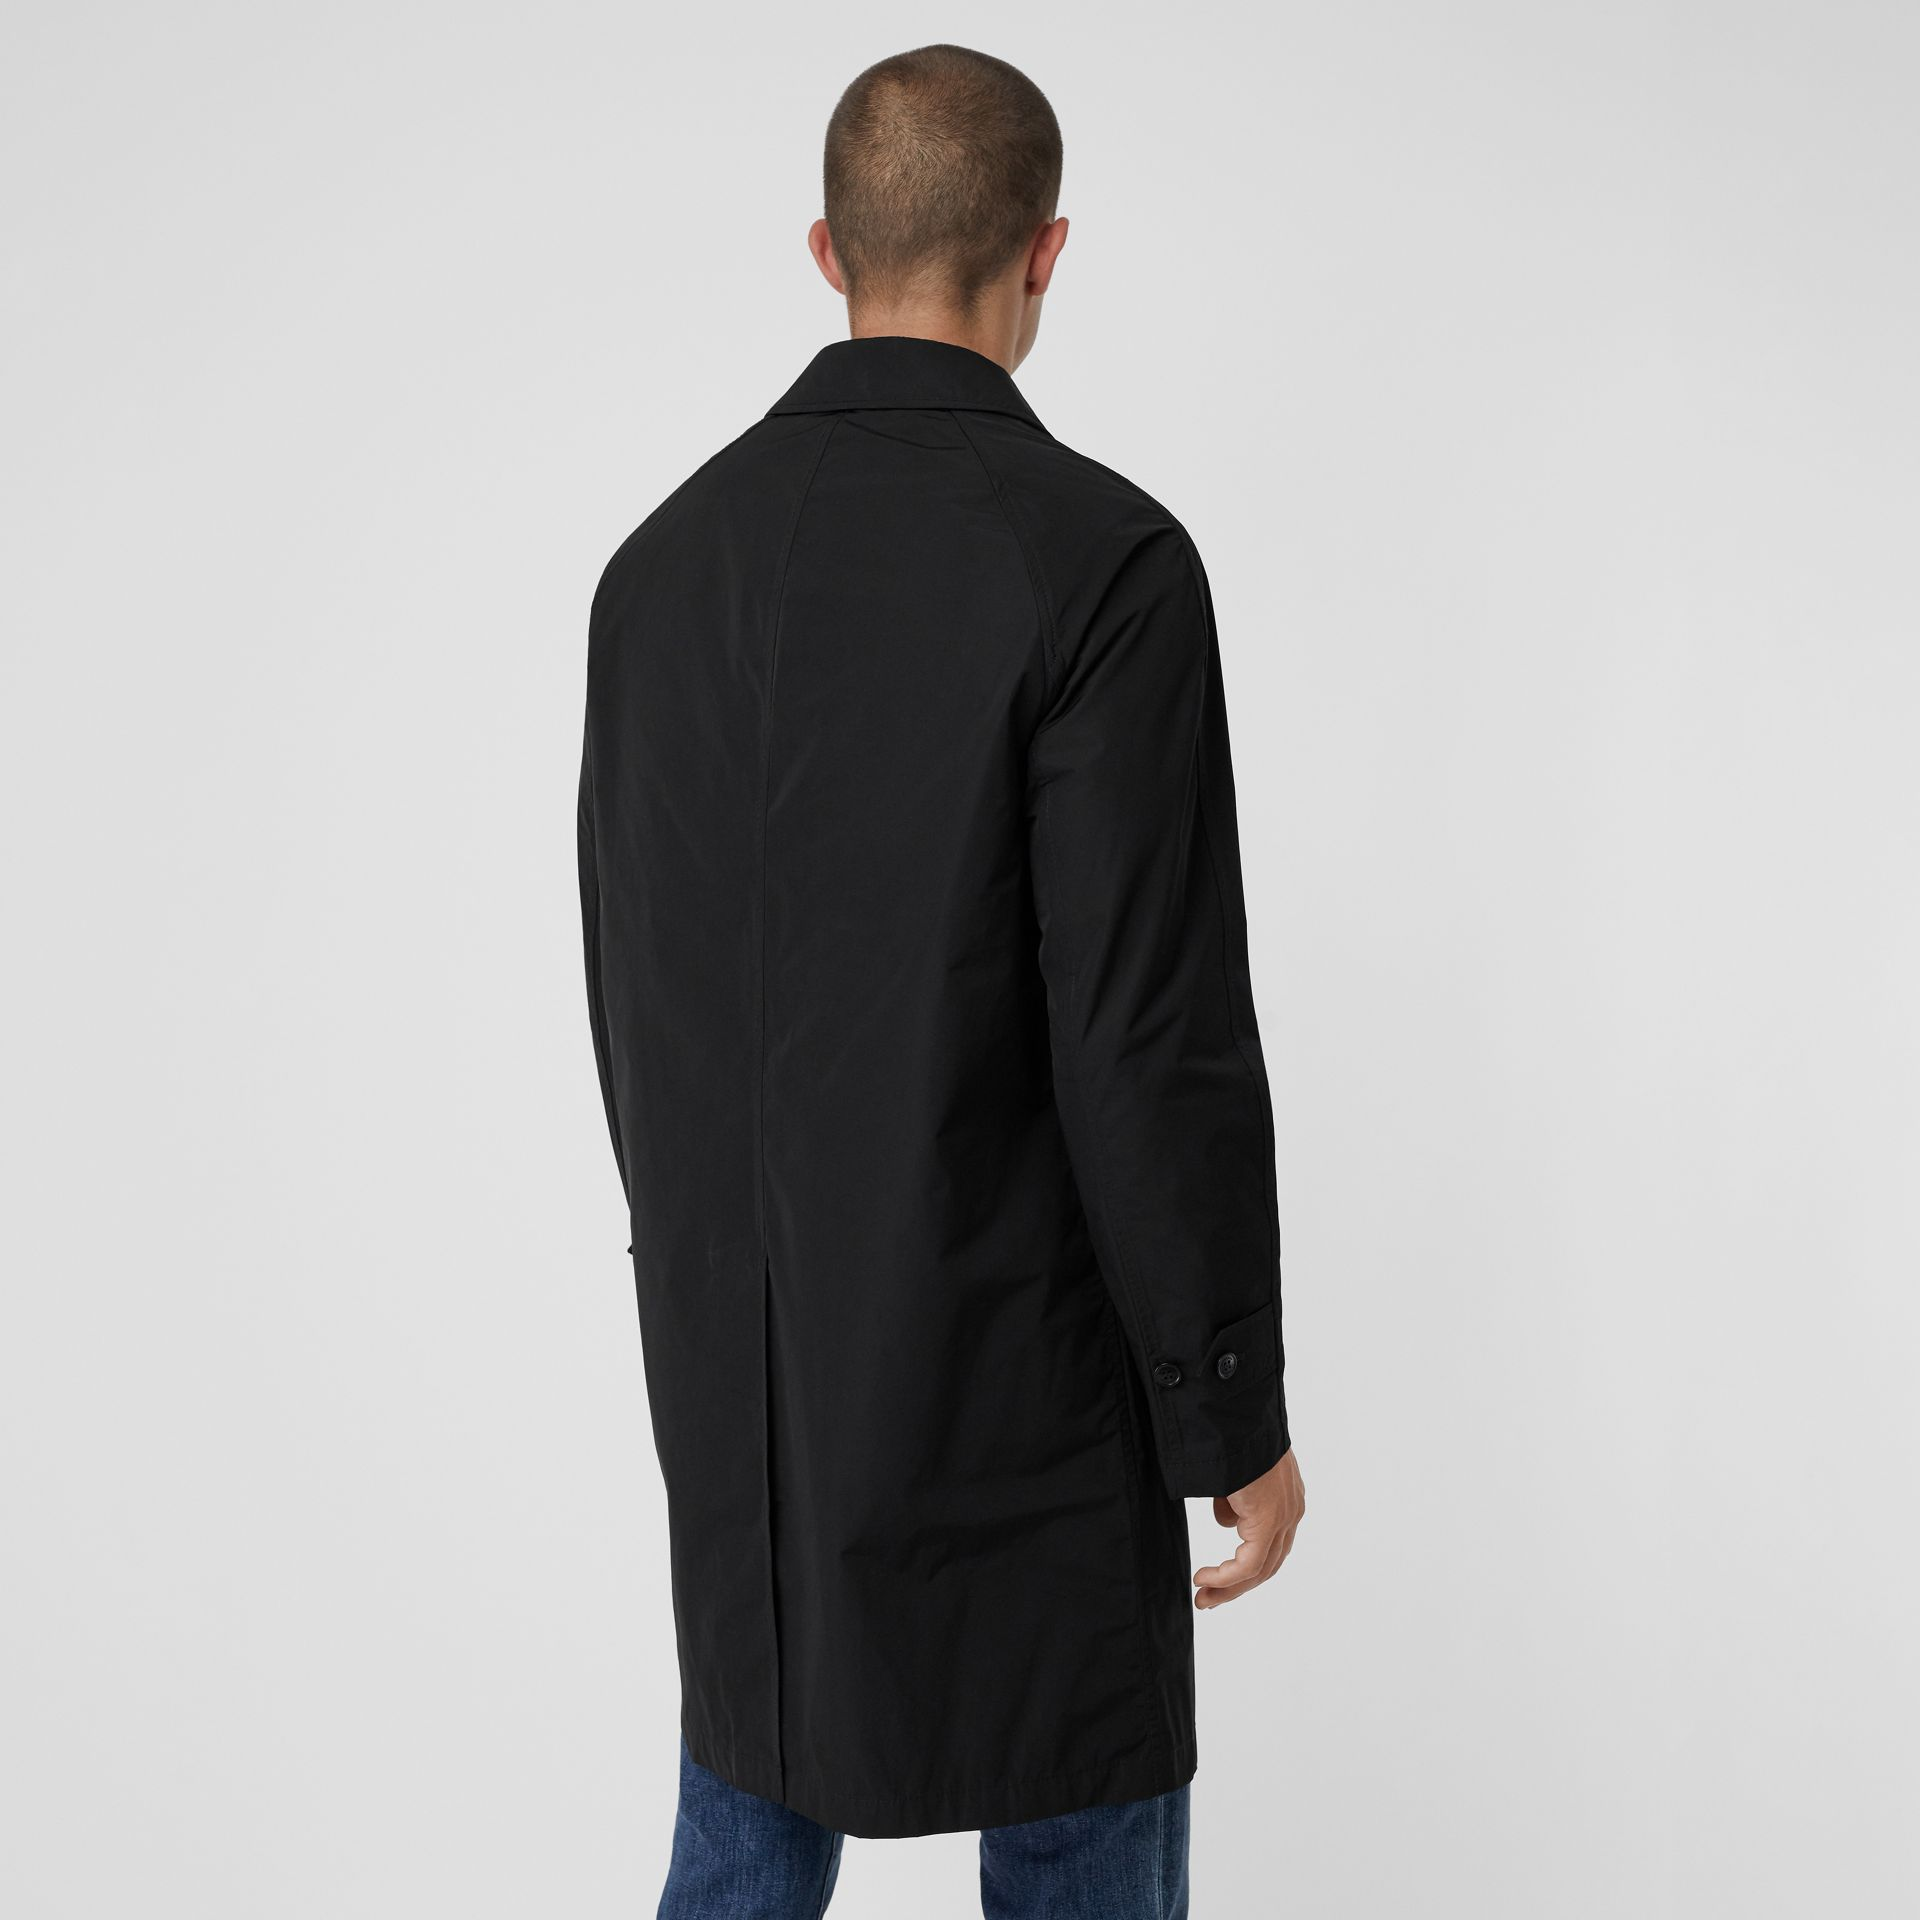 Shape-memory Taffeta Car Coat with Warmer in Black - Men | Burberry - gallery image 2